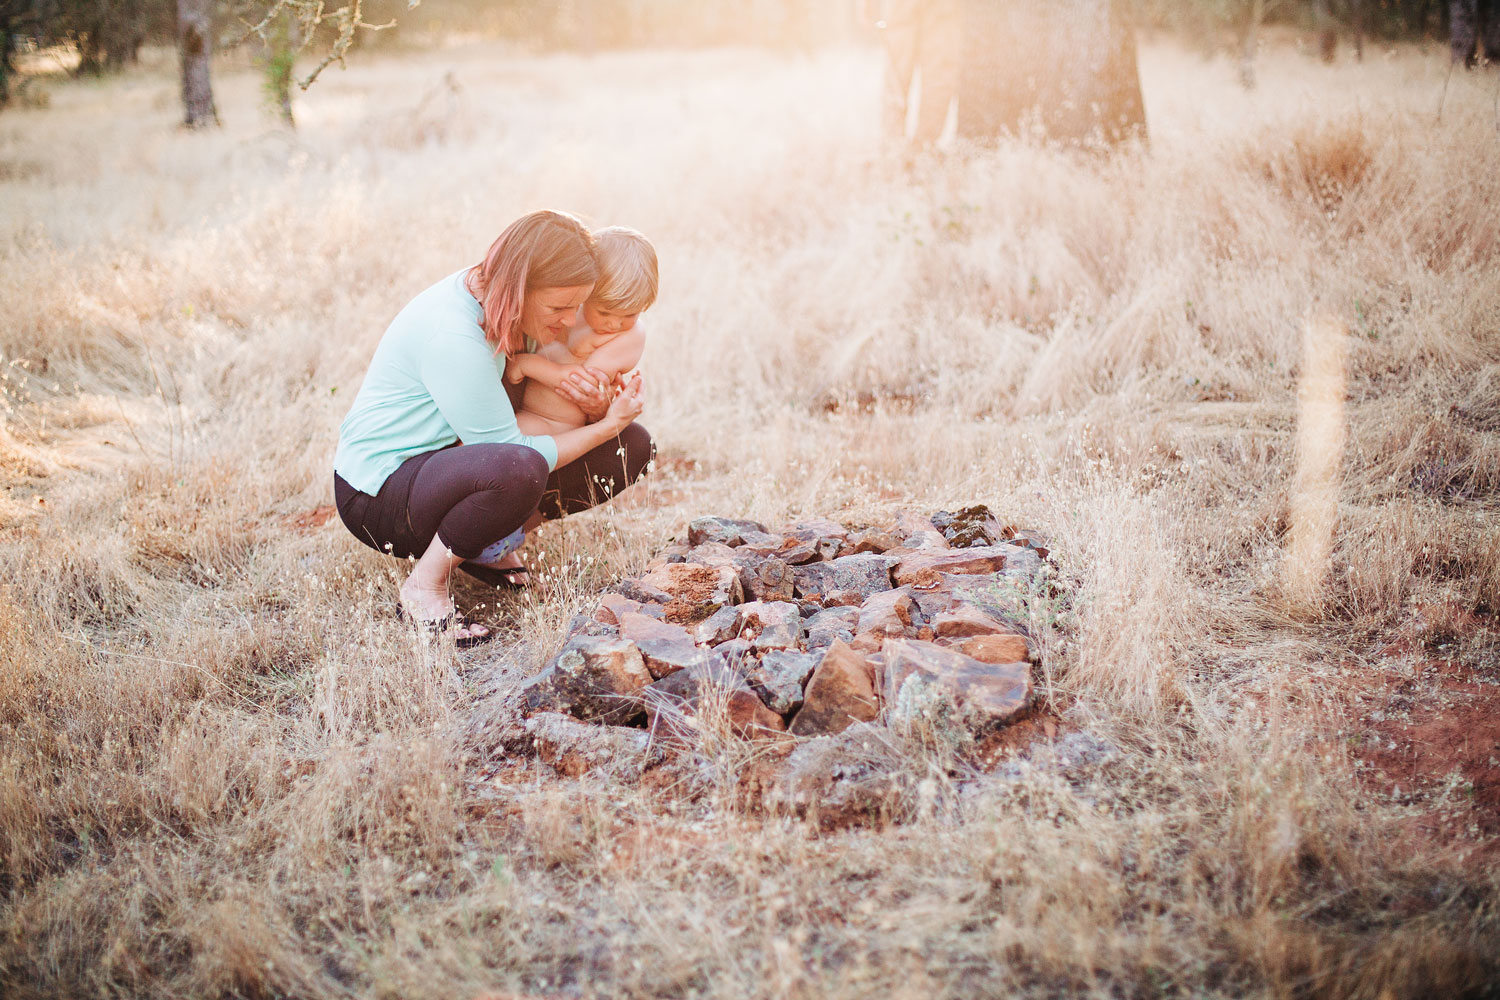 A boy and his aunt pay a visit to a pet grave during a lifestyle family photo shoot in Northern California.